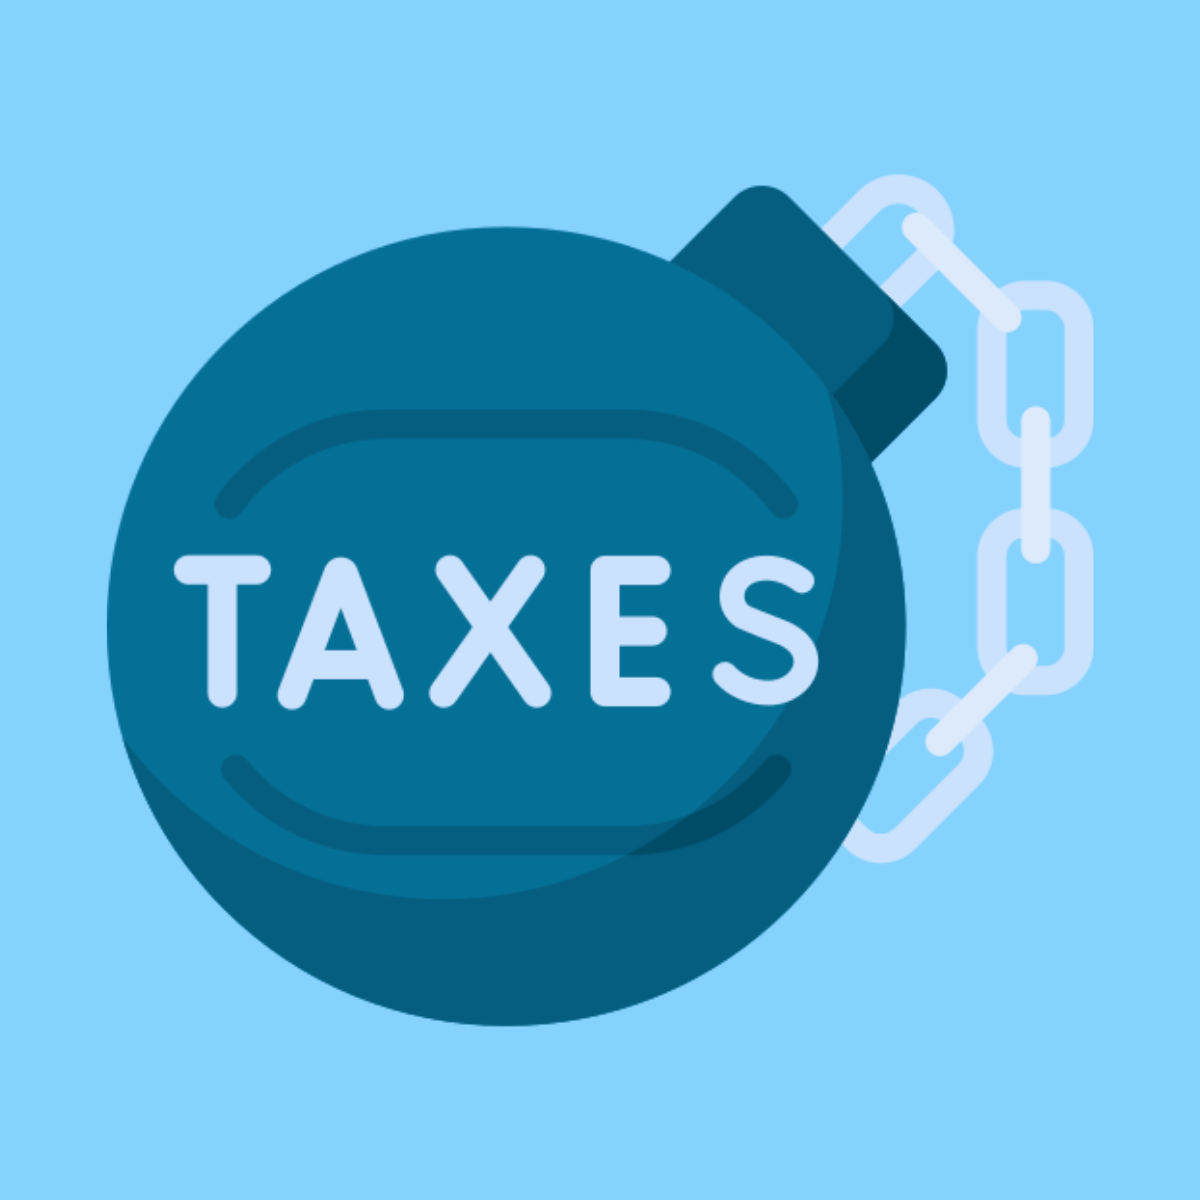 How to Pay Fewer Taxes in Canada